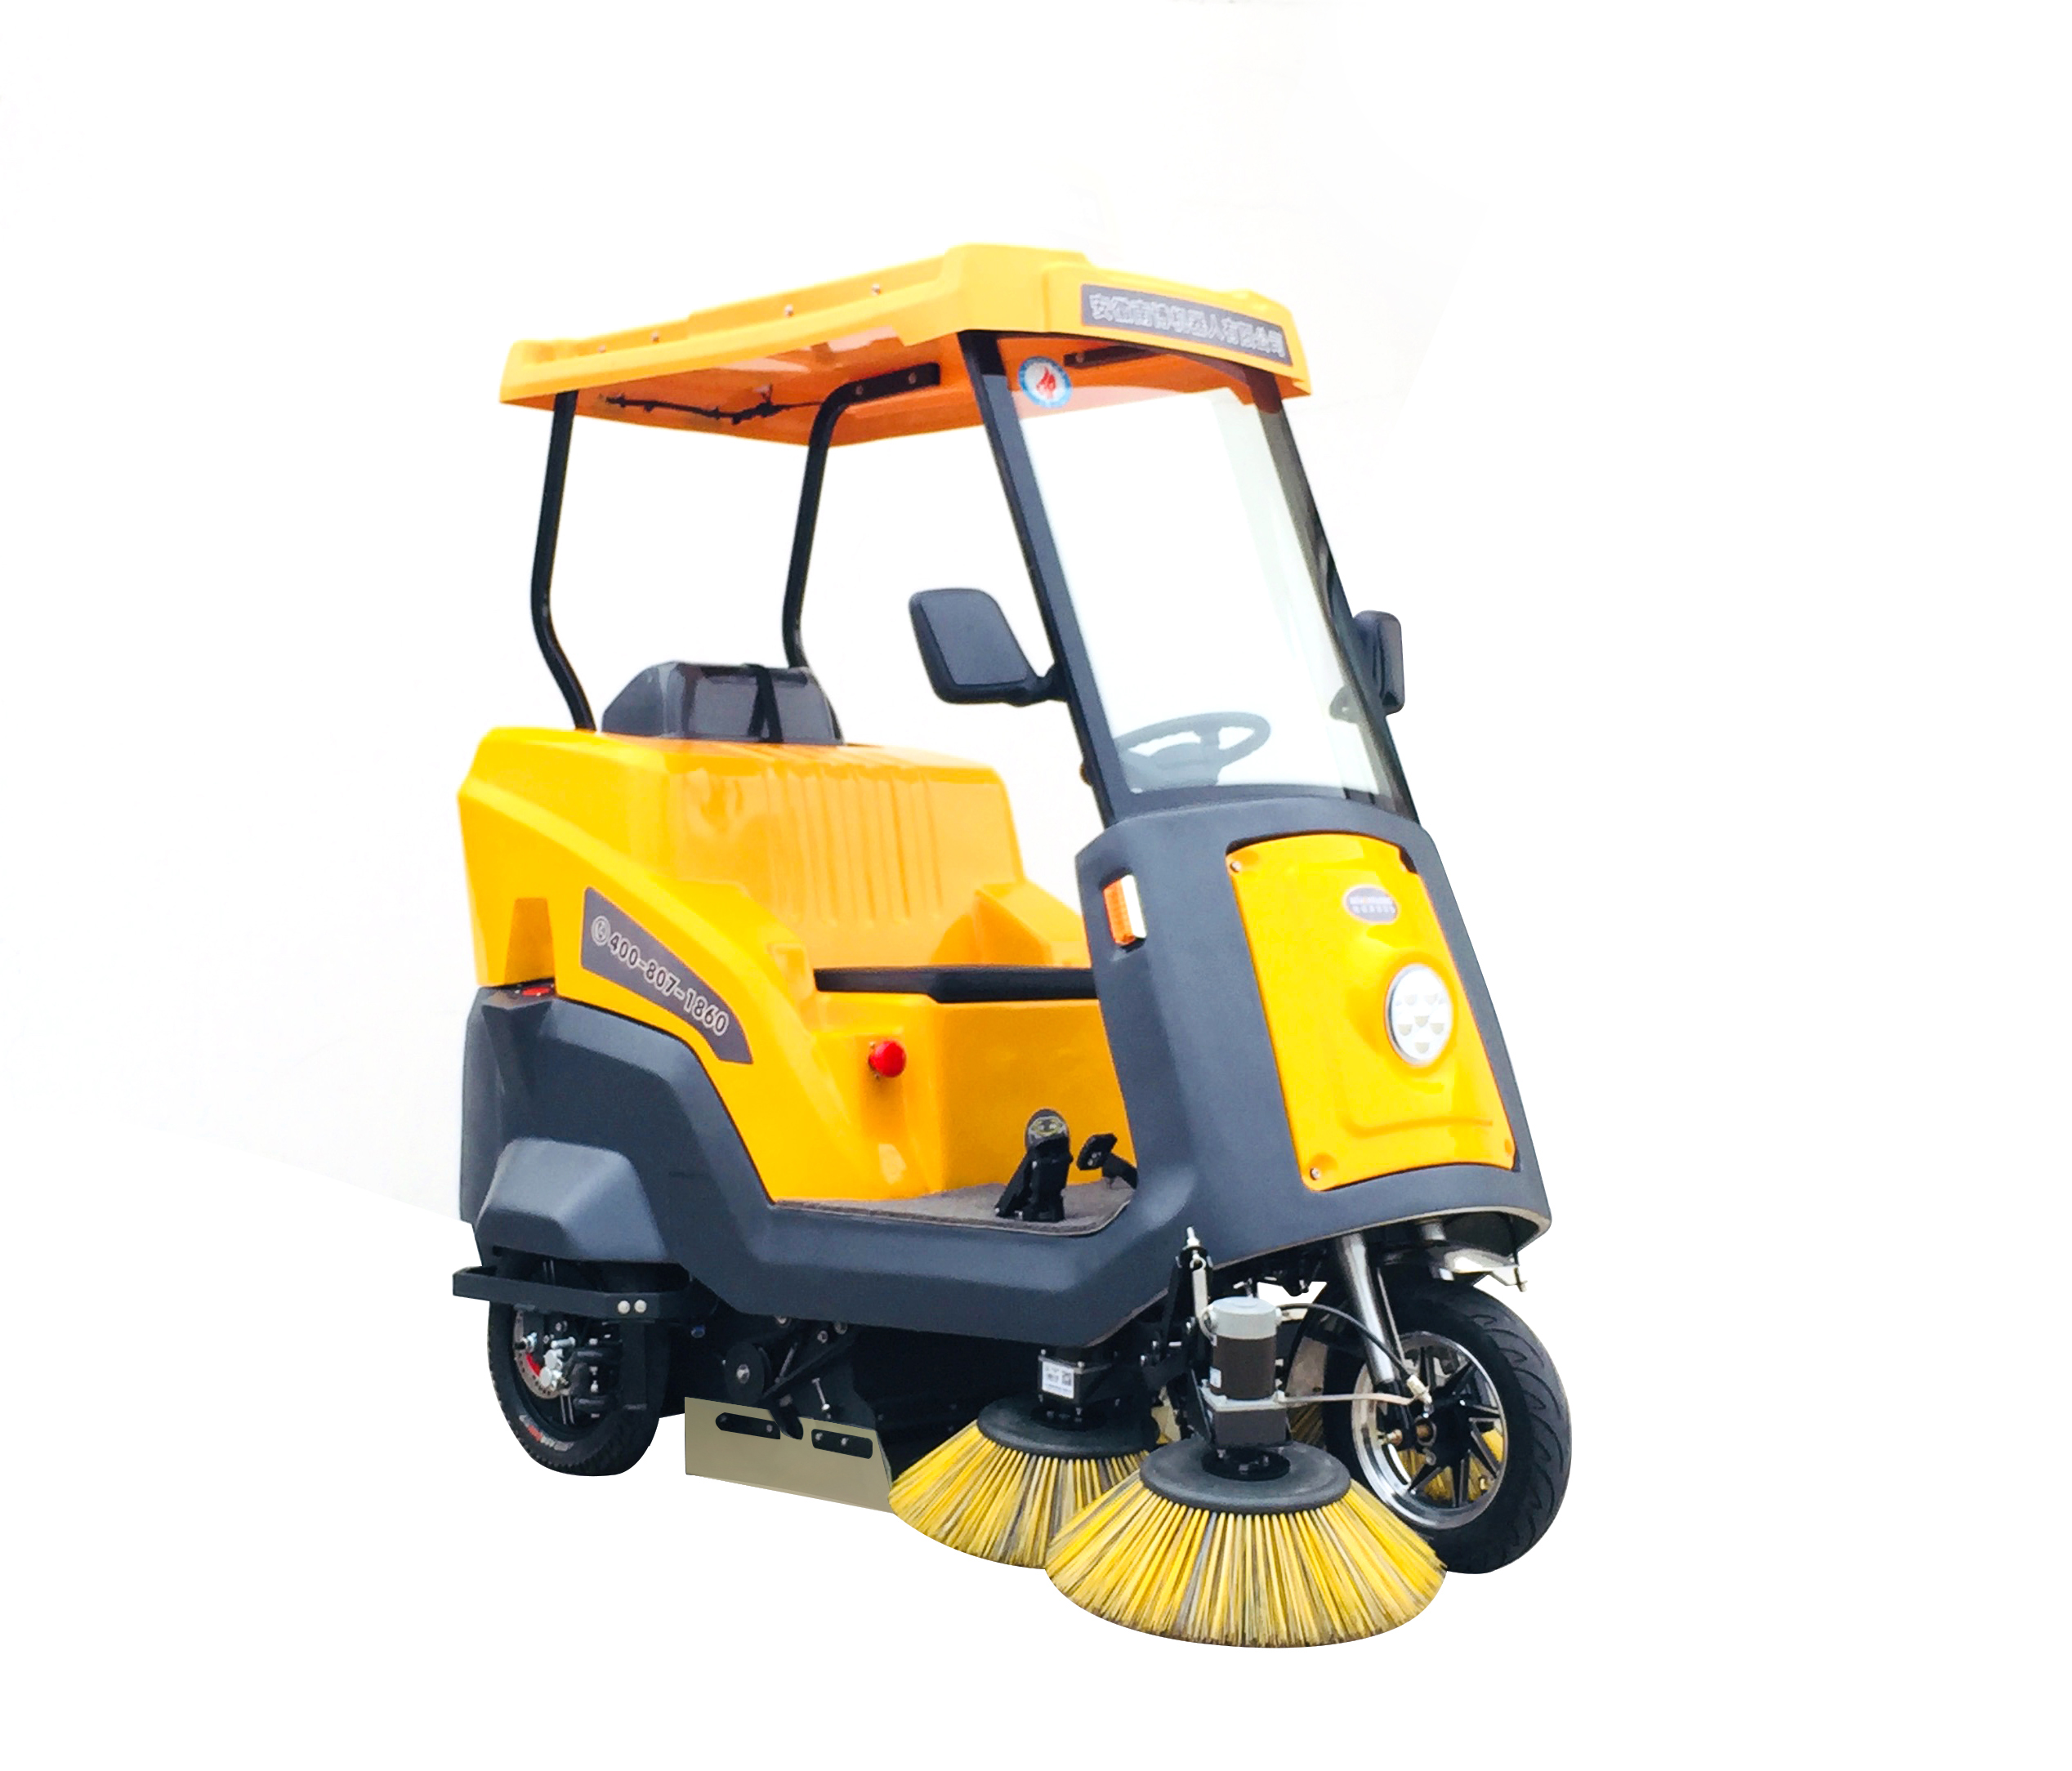 C170 AUTOMATIC RIDE-ON ROAD SWEEPER VEHICLE